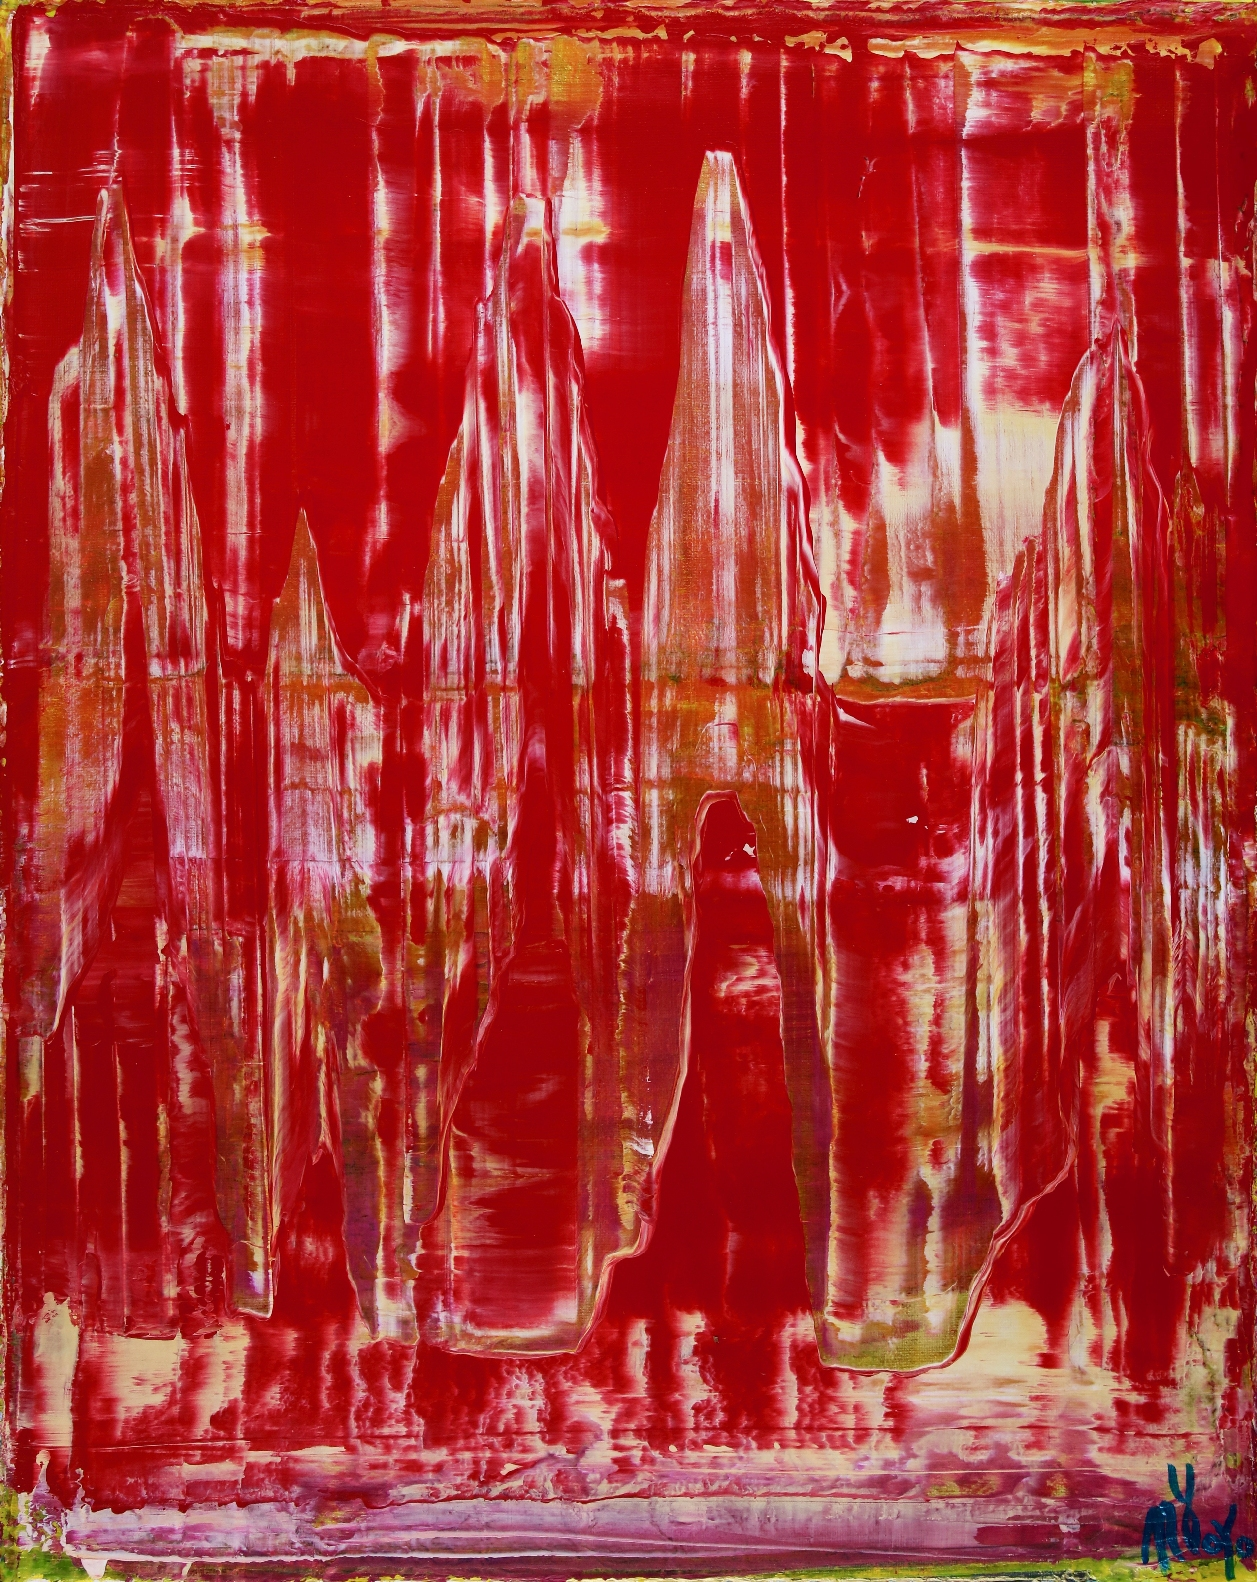 Dimensional Red by Nestor Toro 2019 Los Angeles